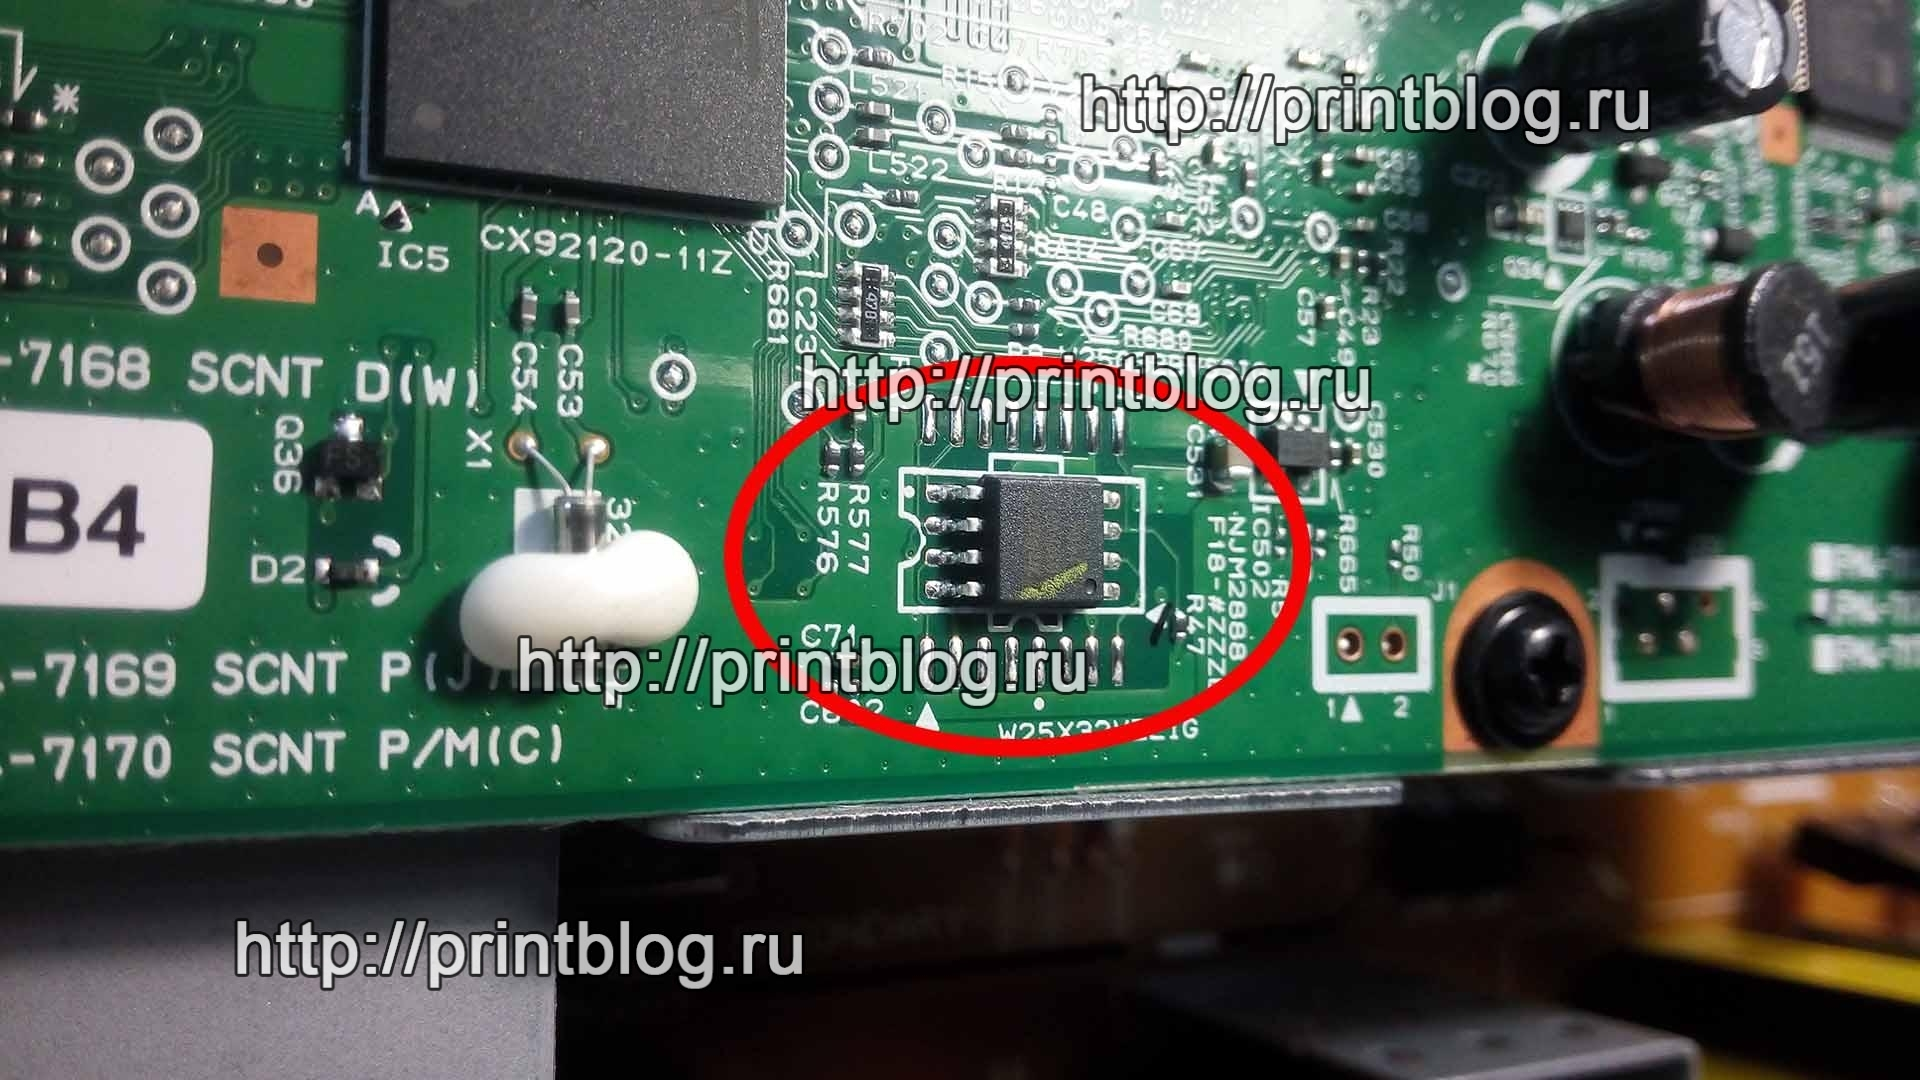 Canon i-SENSYS MF4410 на экране ***Download mode*** USB AVAILABLE, Waiting